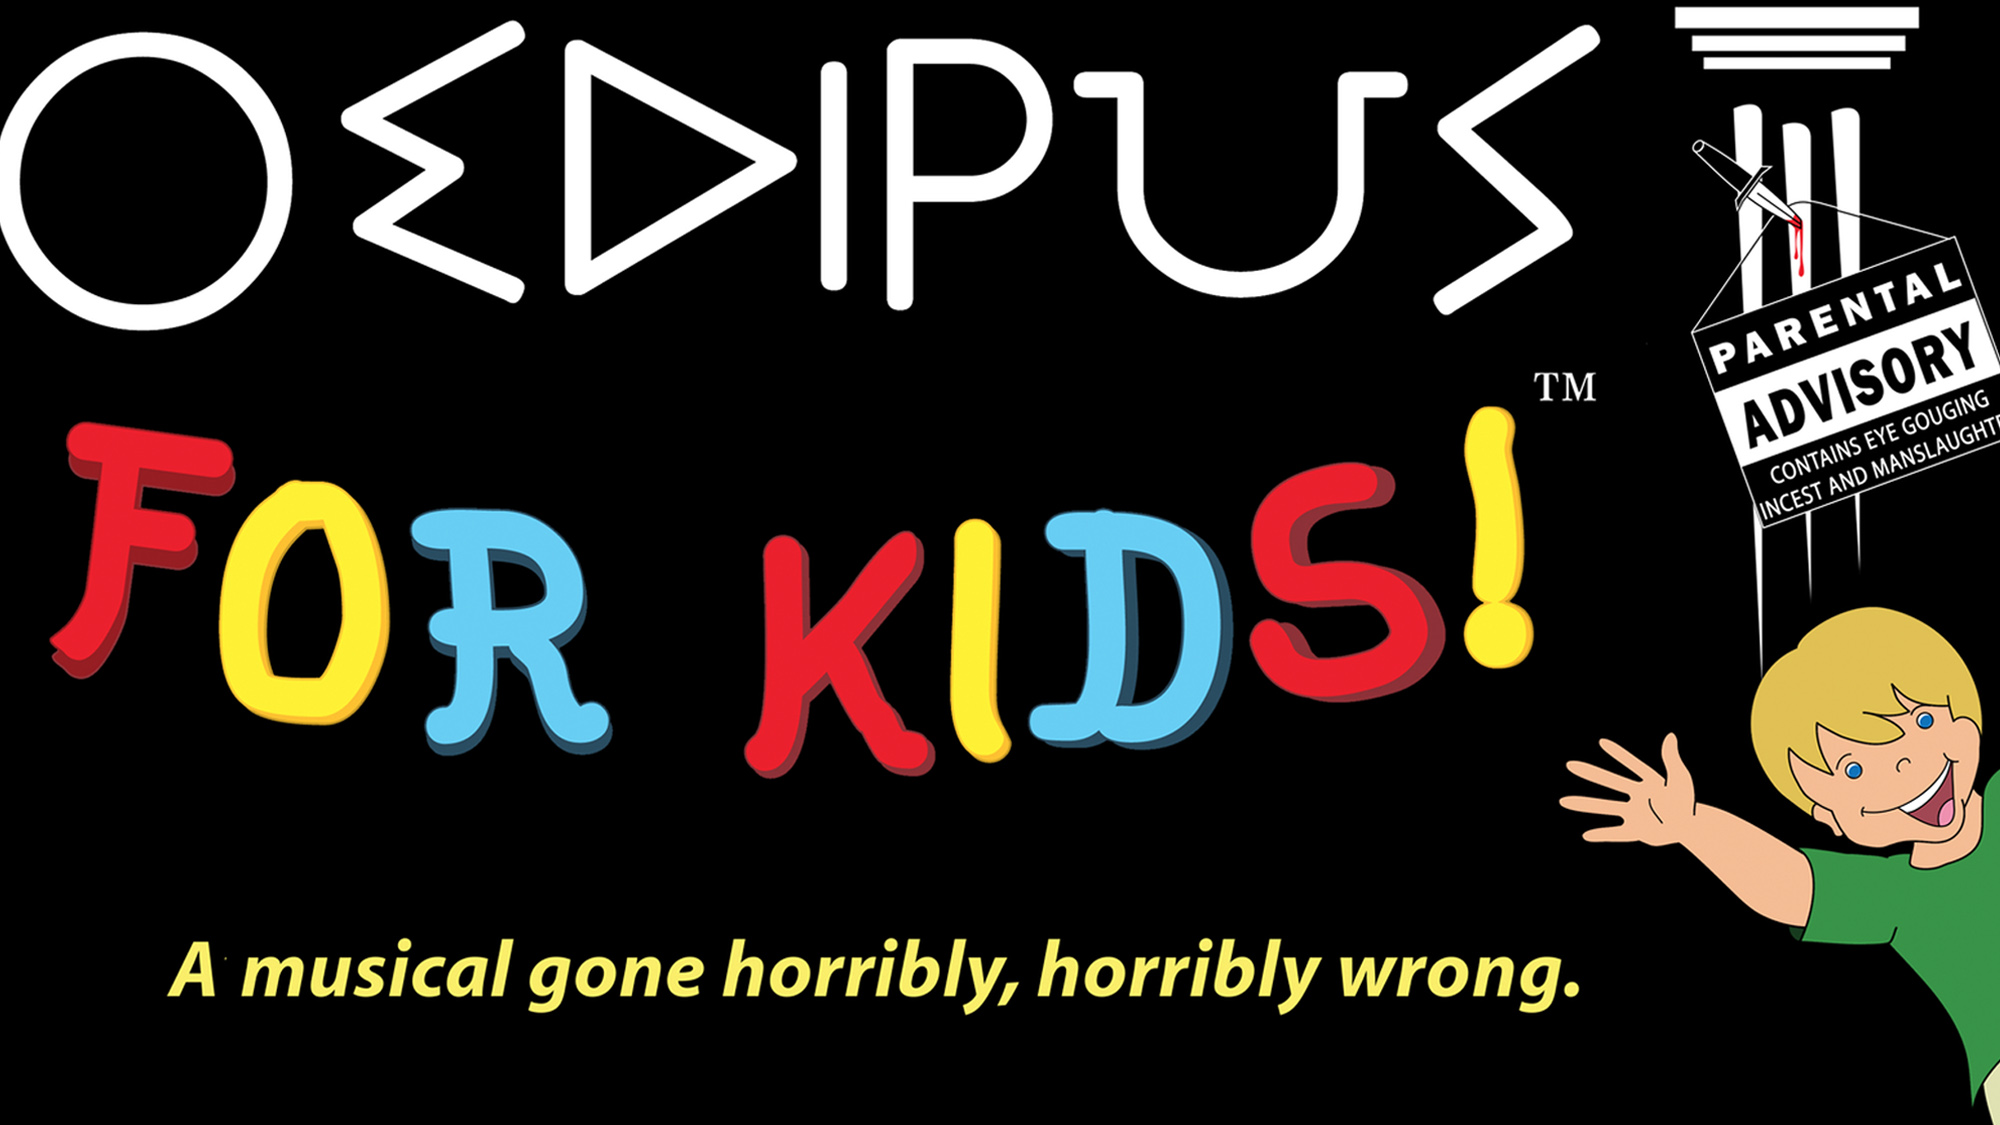 Oedipus for kids! -